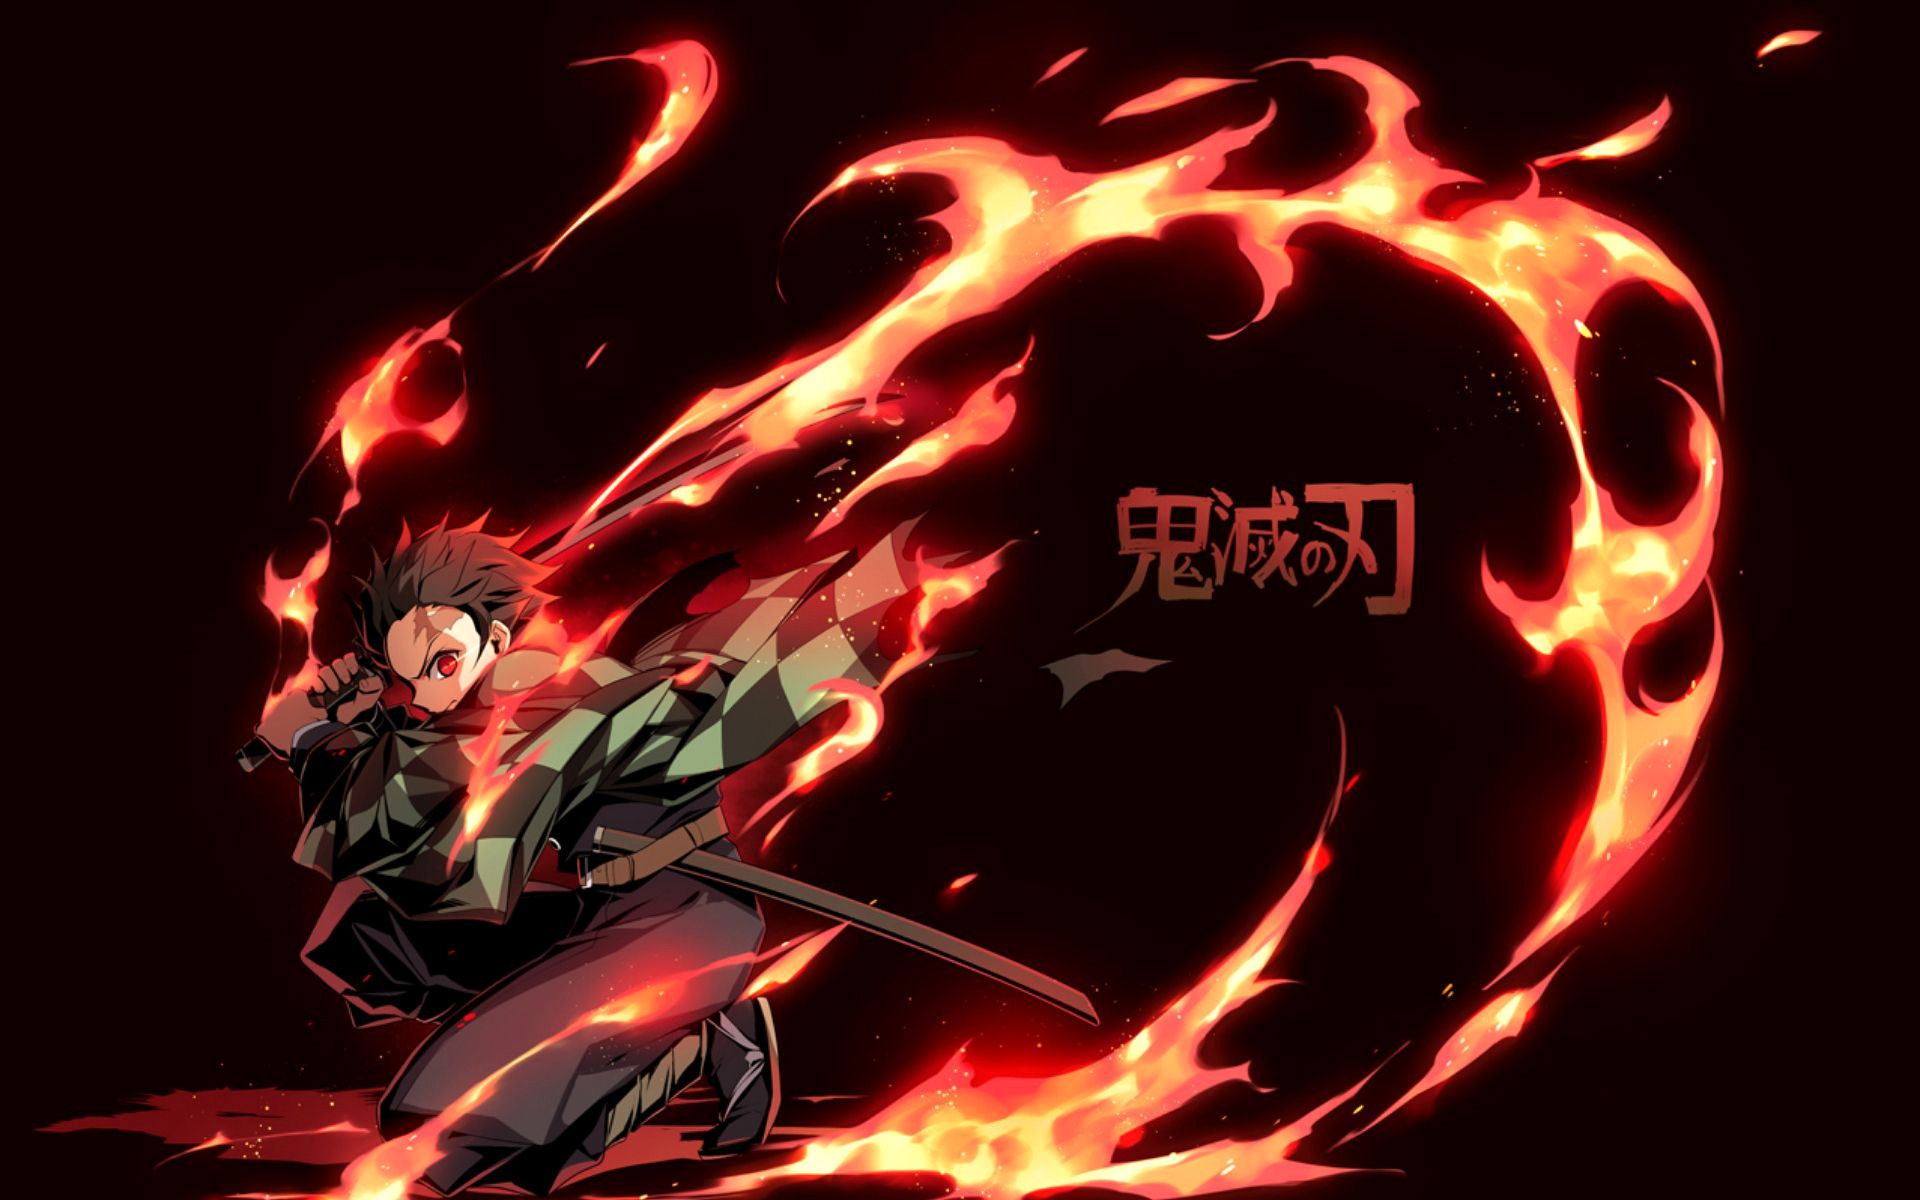 Best Of Demon Slayer Wallpapers Top Free Demon Slayer Backgrounds Anime Demon Anime Wallpaper Slayer Anime